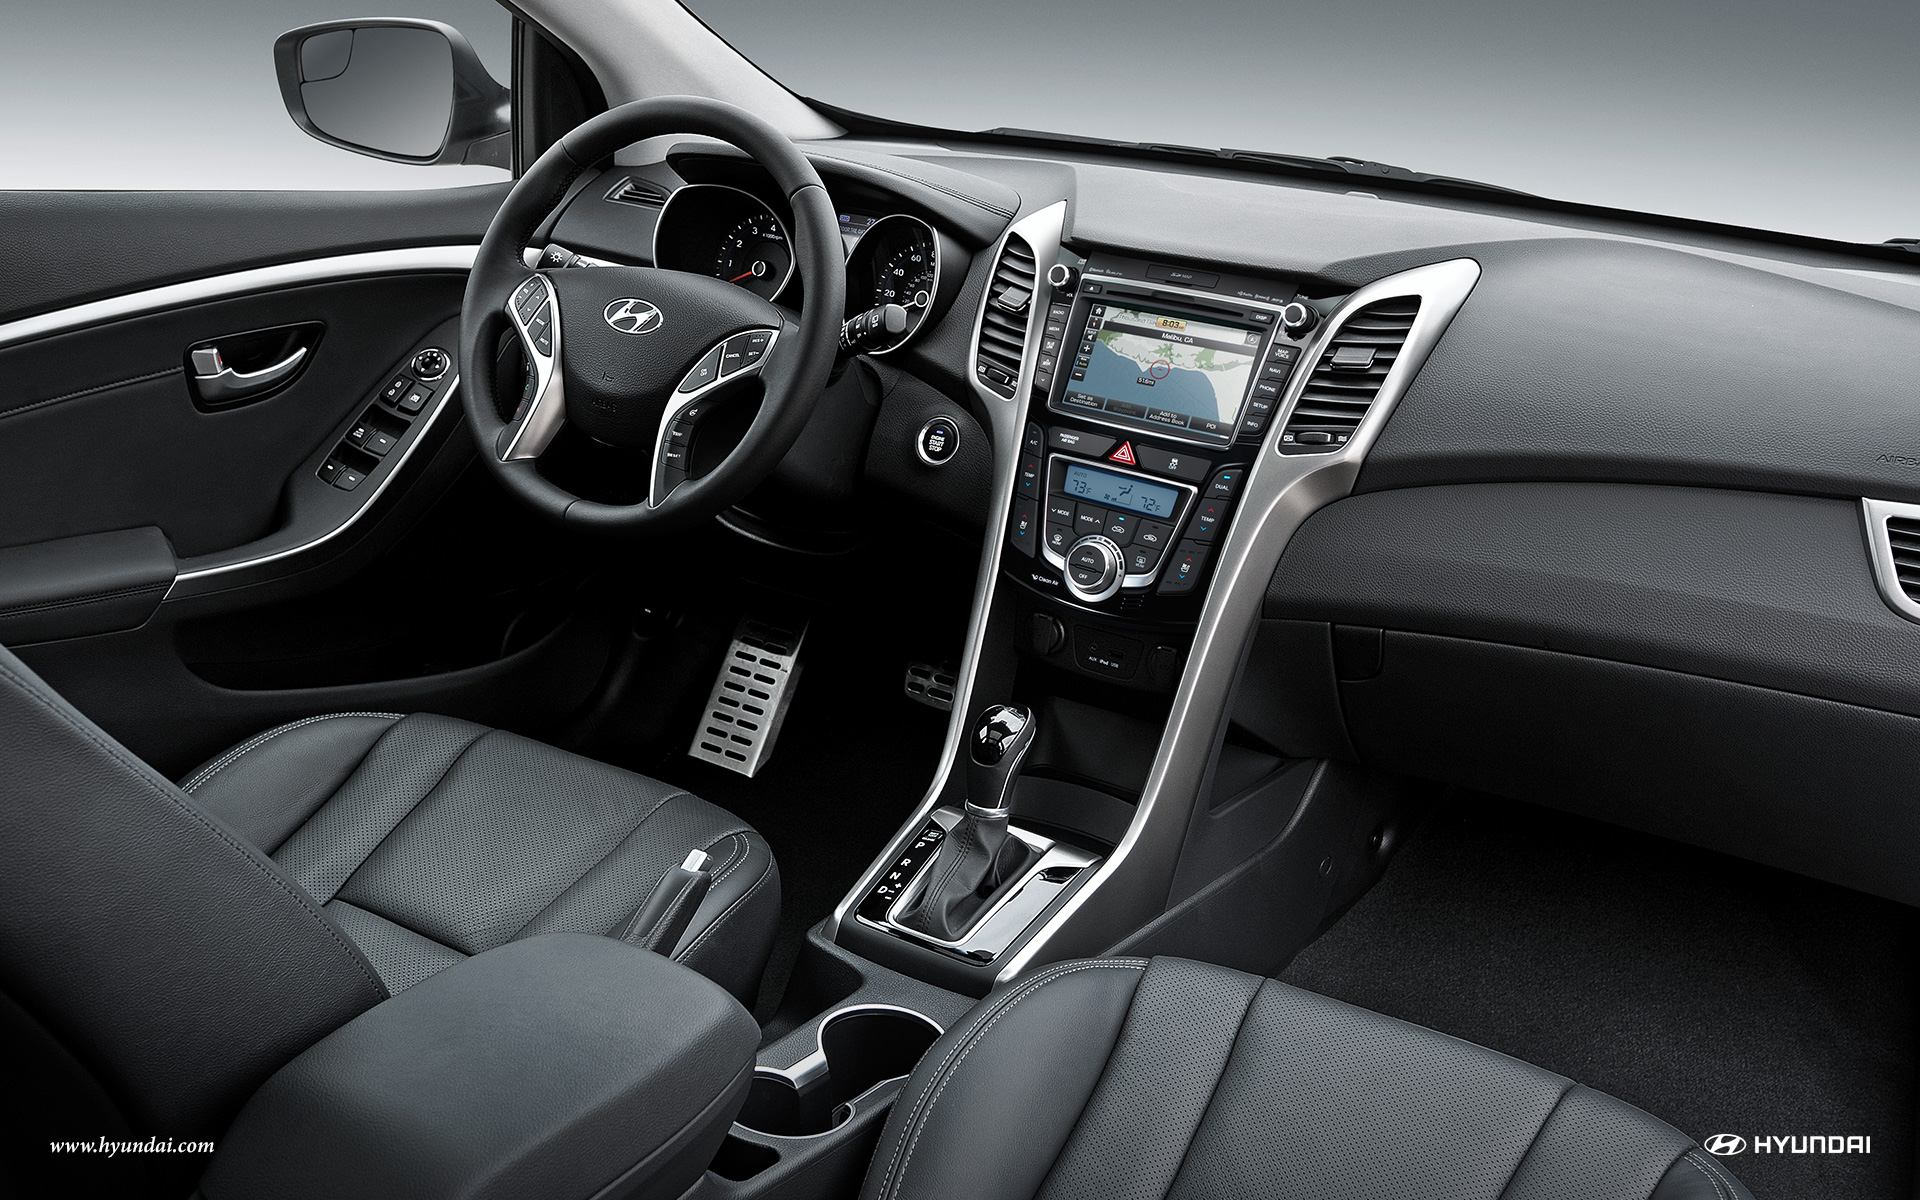 Interior Features Of The 2016 Hyundai Elantra GT